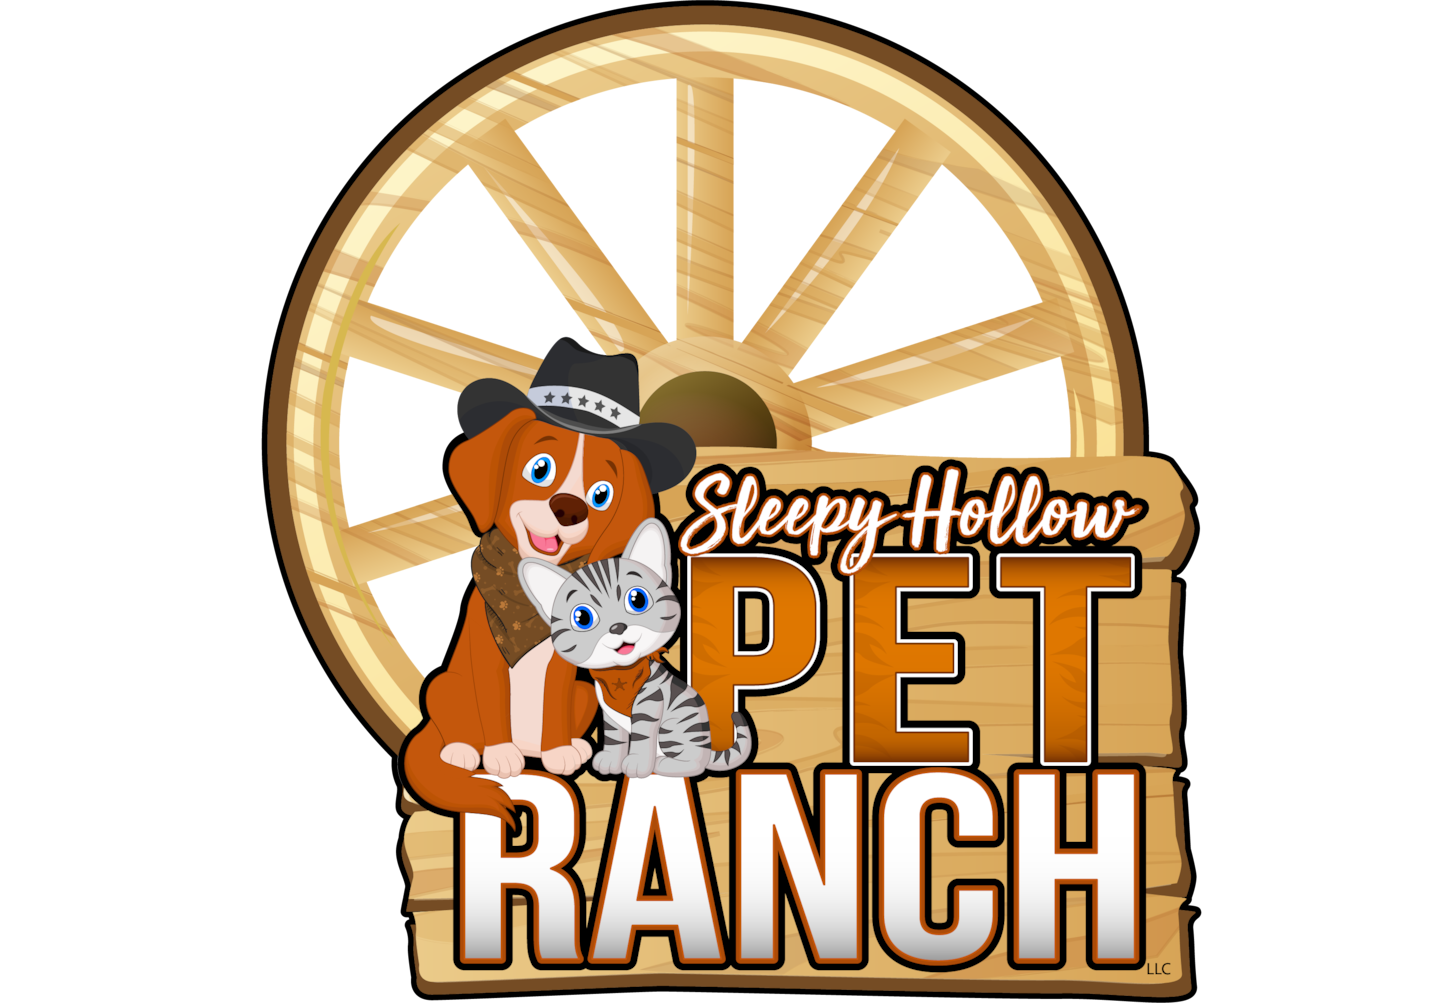 Sleepy Hollow Pet Ranch LLC